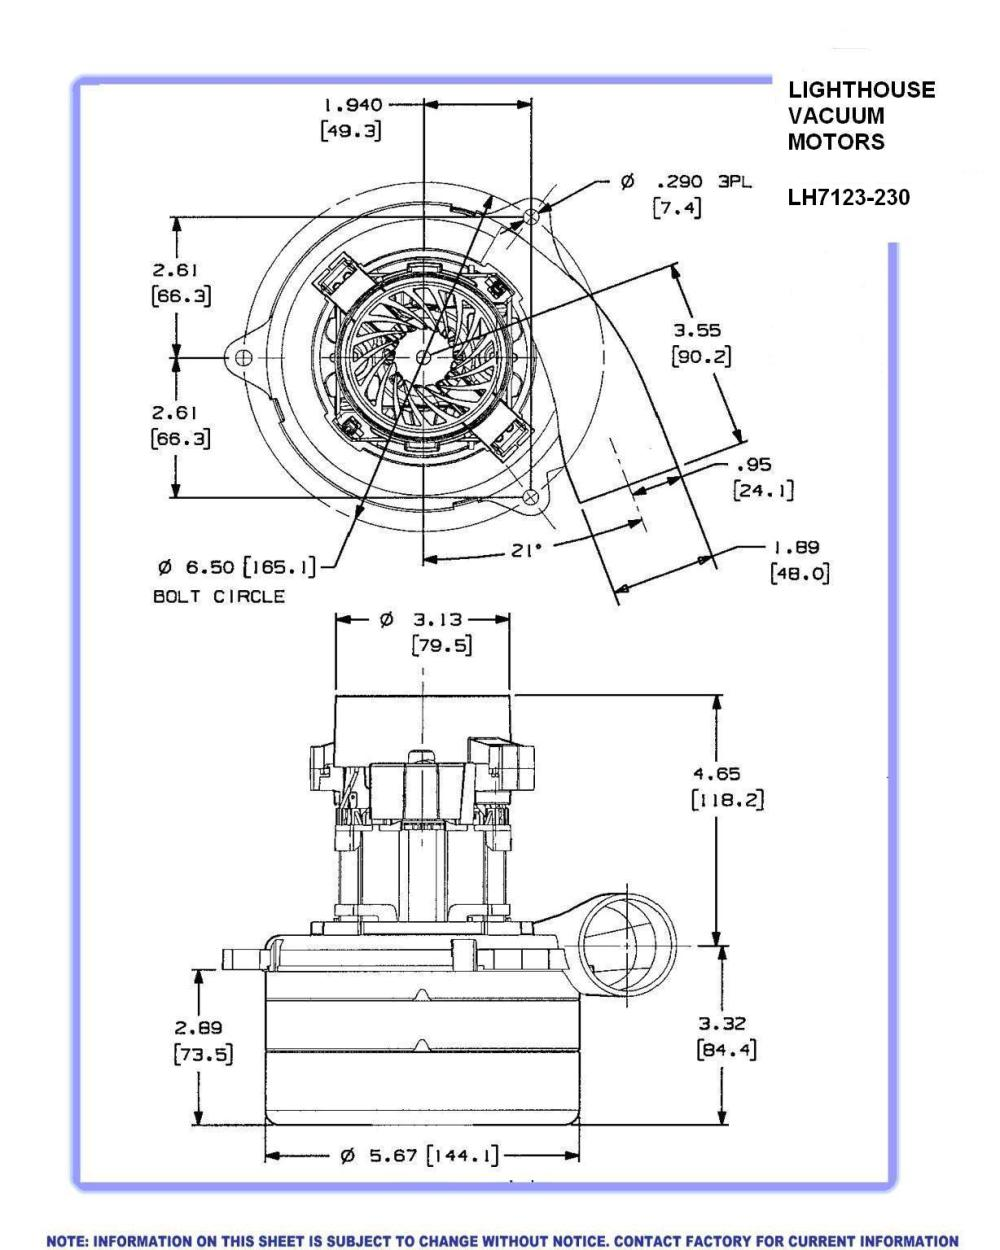 medium resolution of shopbot vacuum motors rh centralvacuummotor com vacuum cleaner motor wiring diagram rainbow vacuum motor diagram